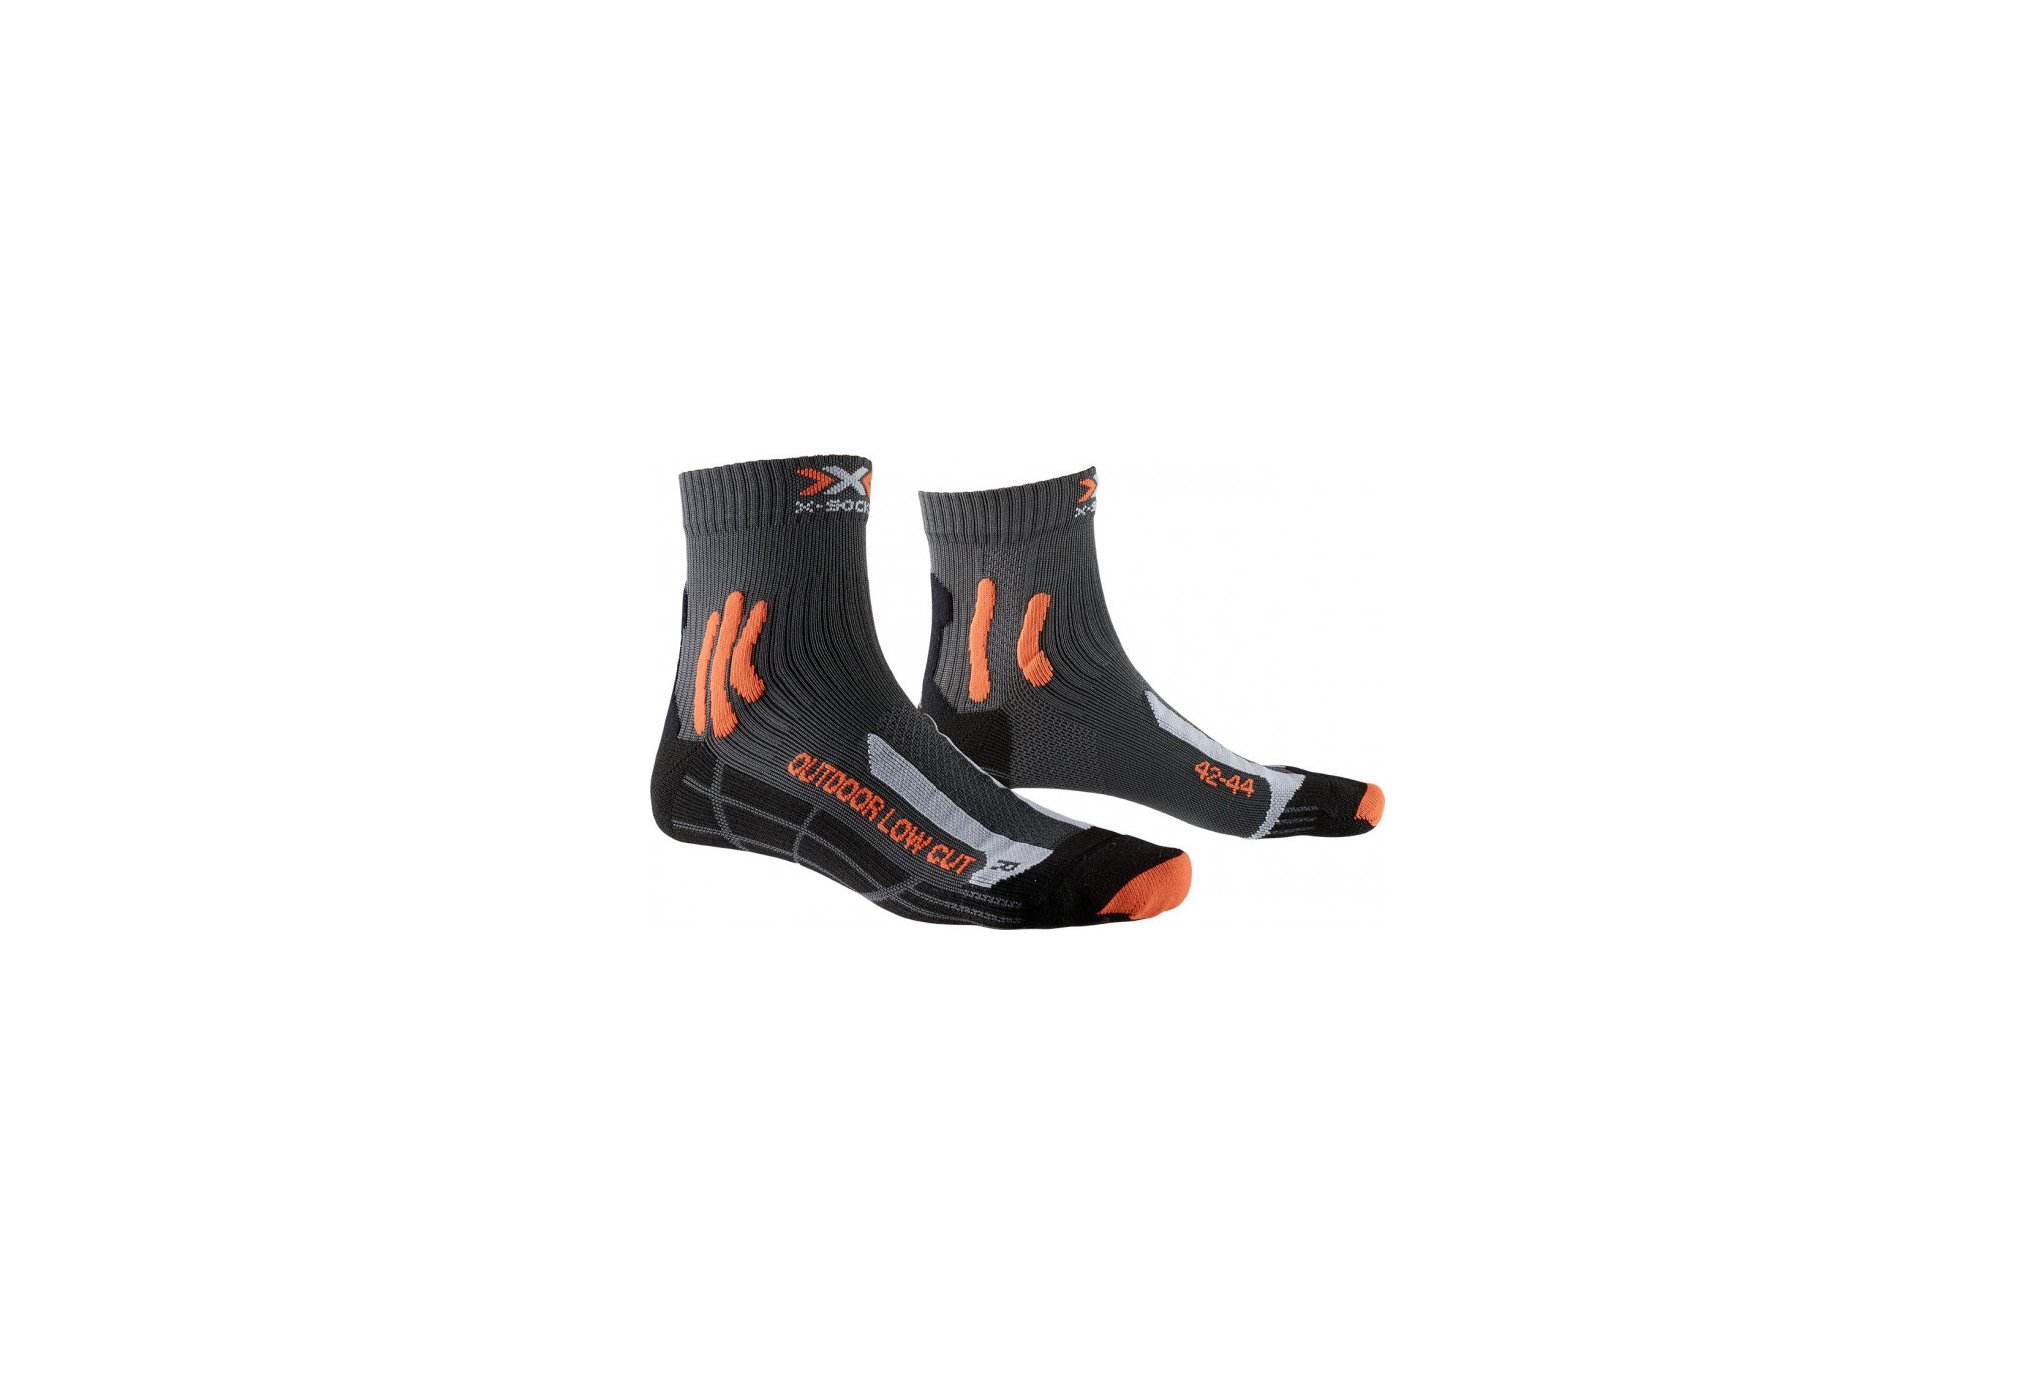 X-Socks Trek Outdoor Low Cut Chaussettes